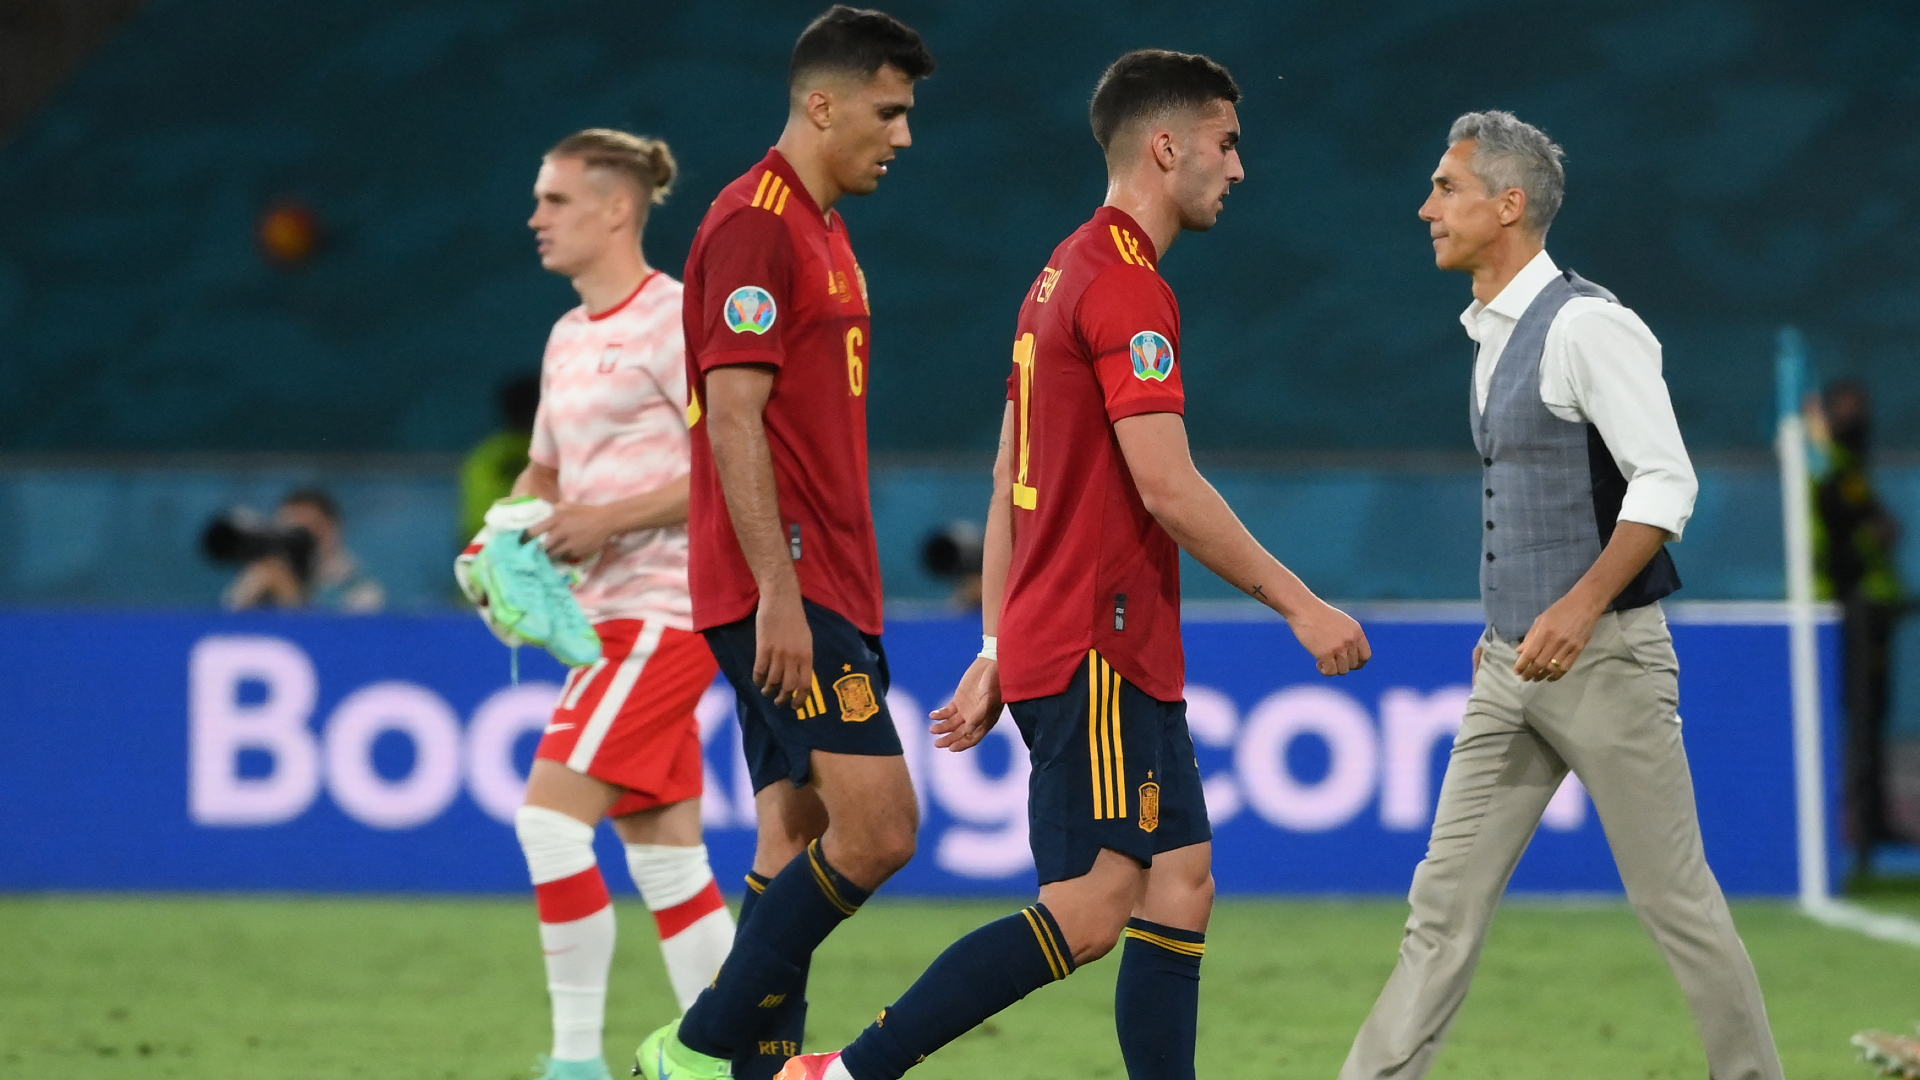 Euro 2020: Spain 1-1 Poland full match reaction and quotes: La Roja 'frustrated' with disappointing draw